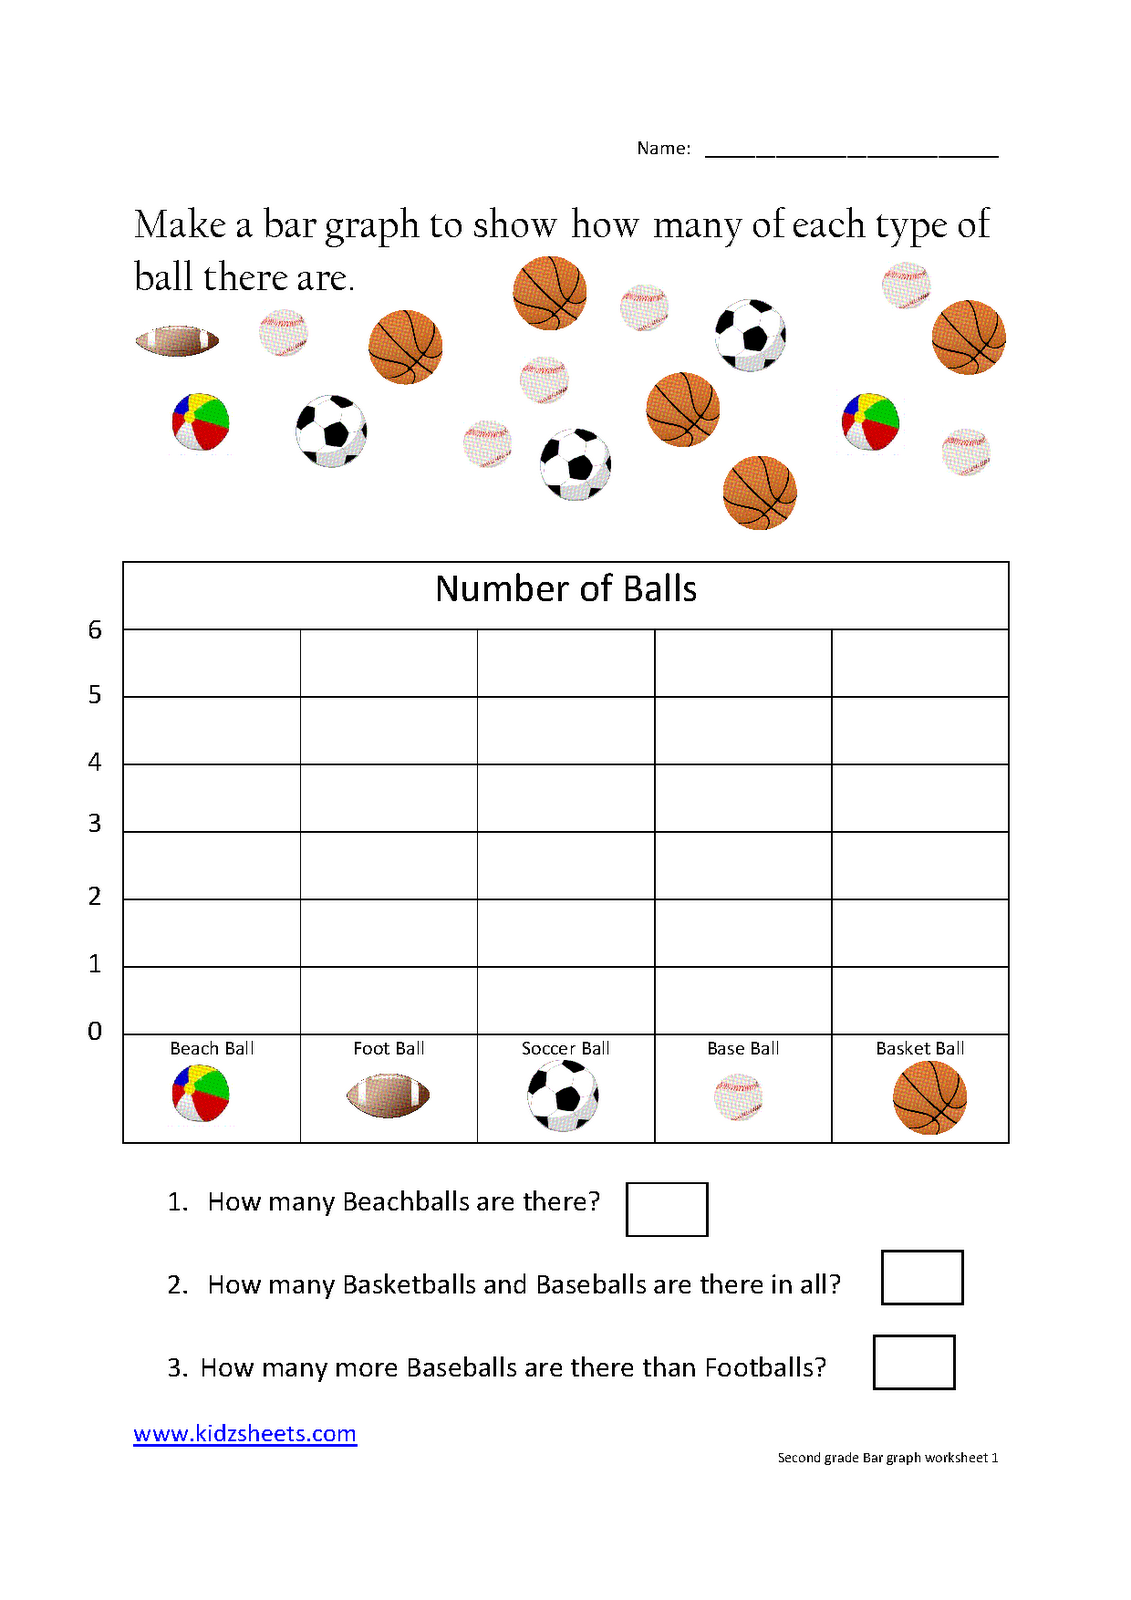 Worksheets Picture Graph Worksheets kidz worksheets second grade bar graph worksheet1 graph